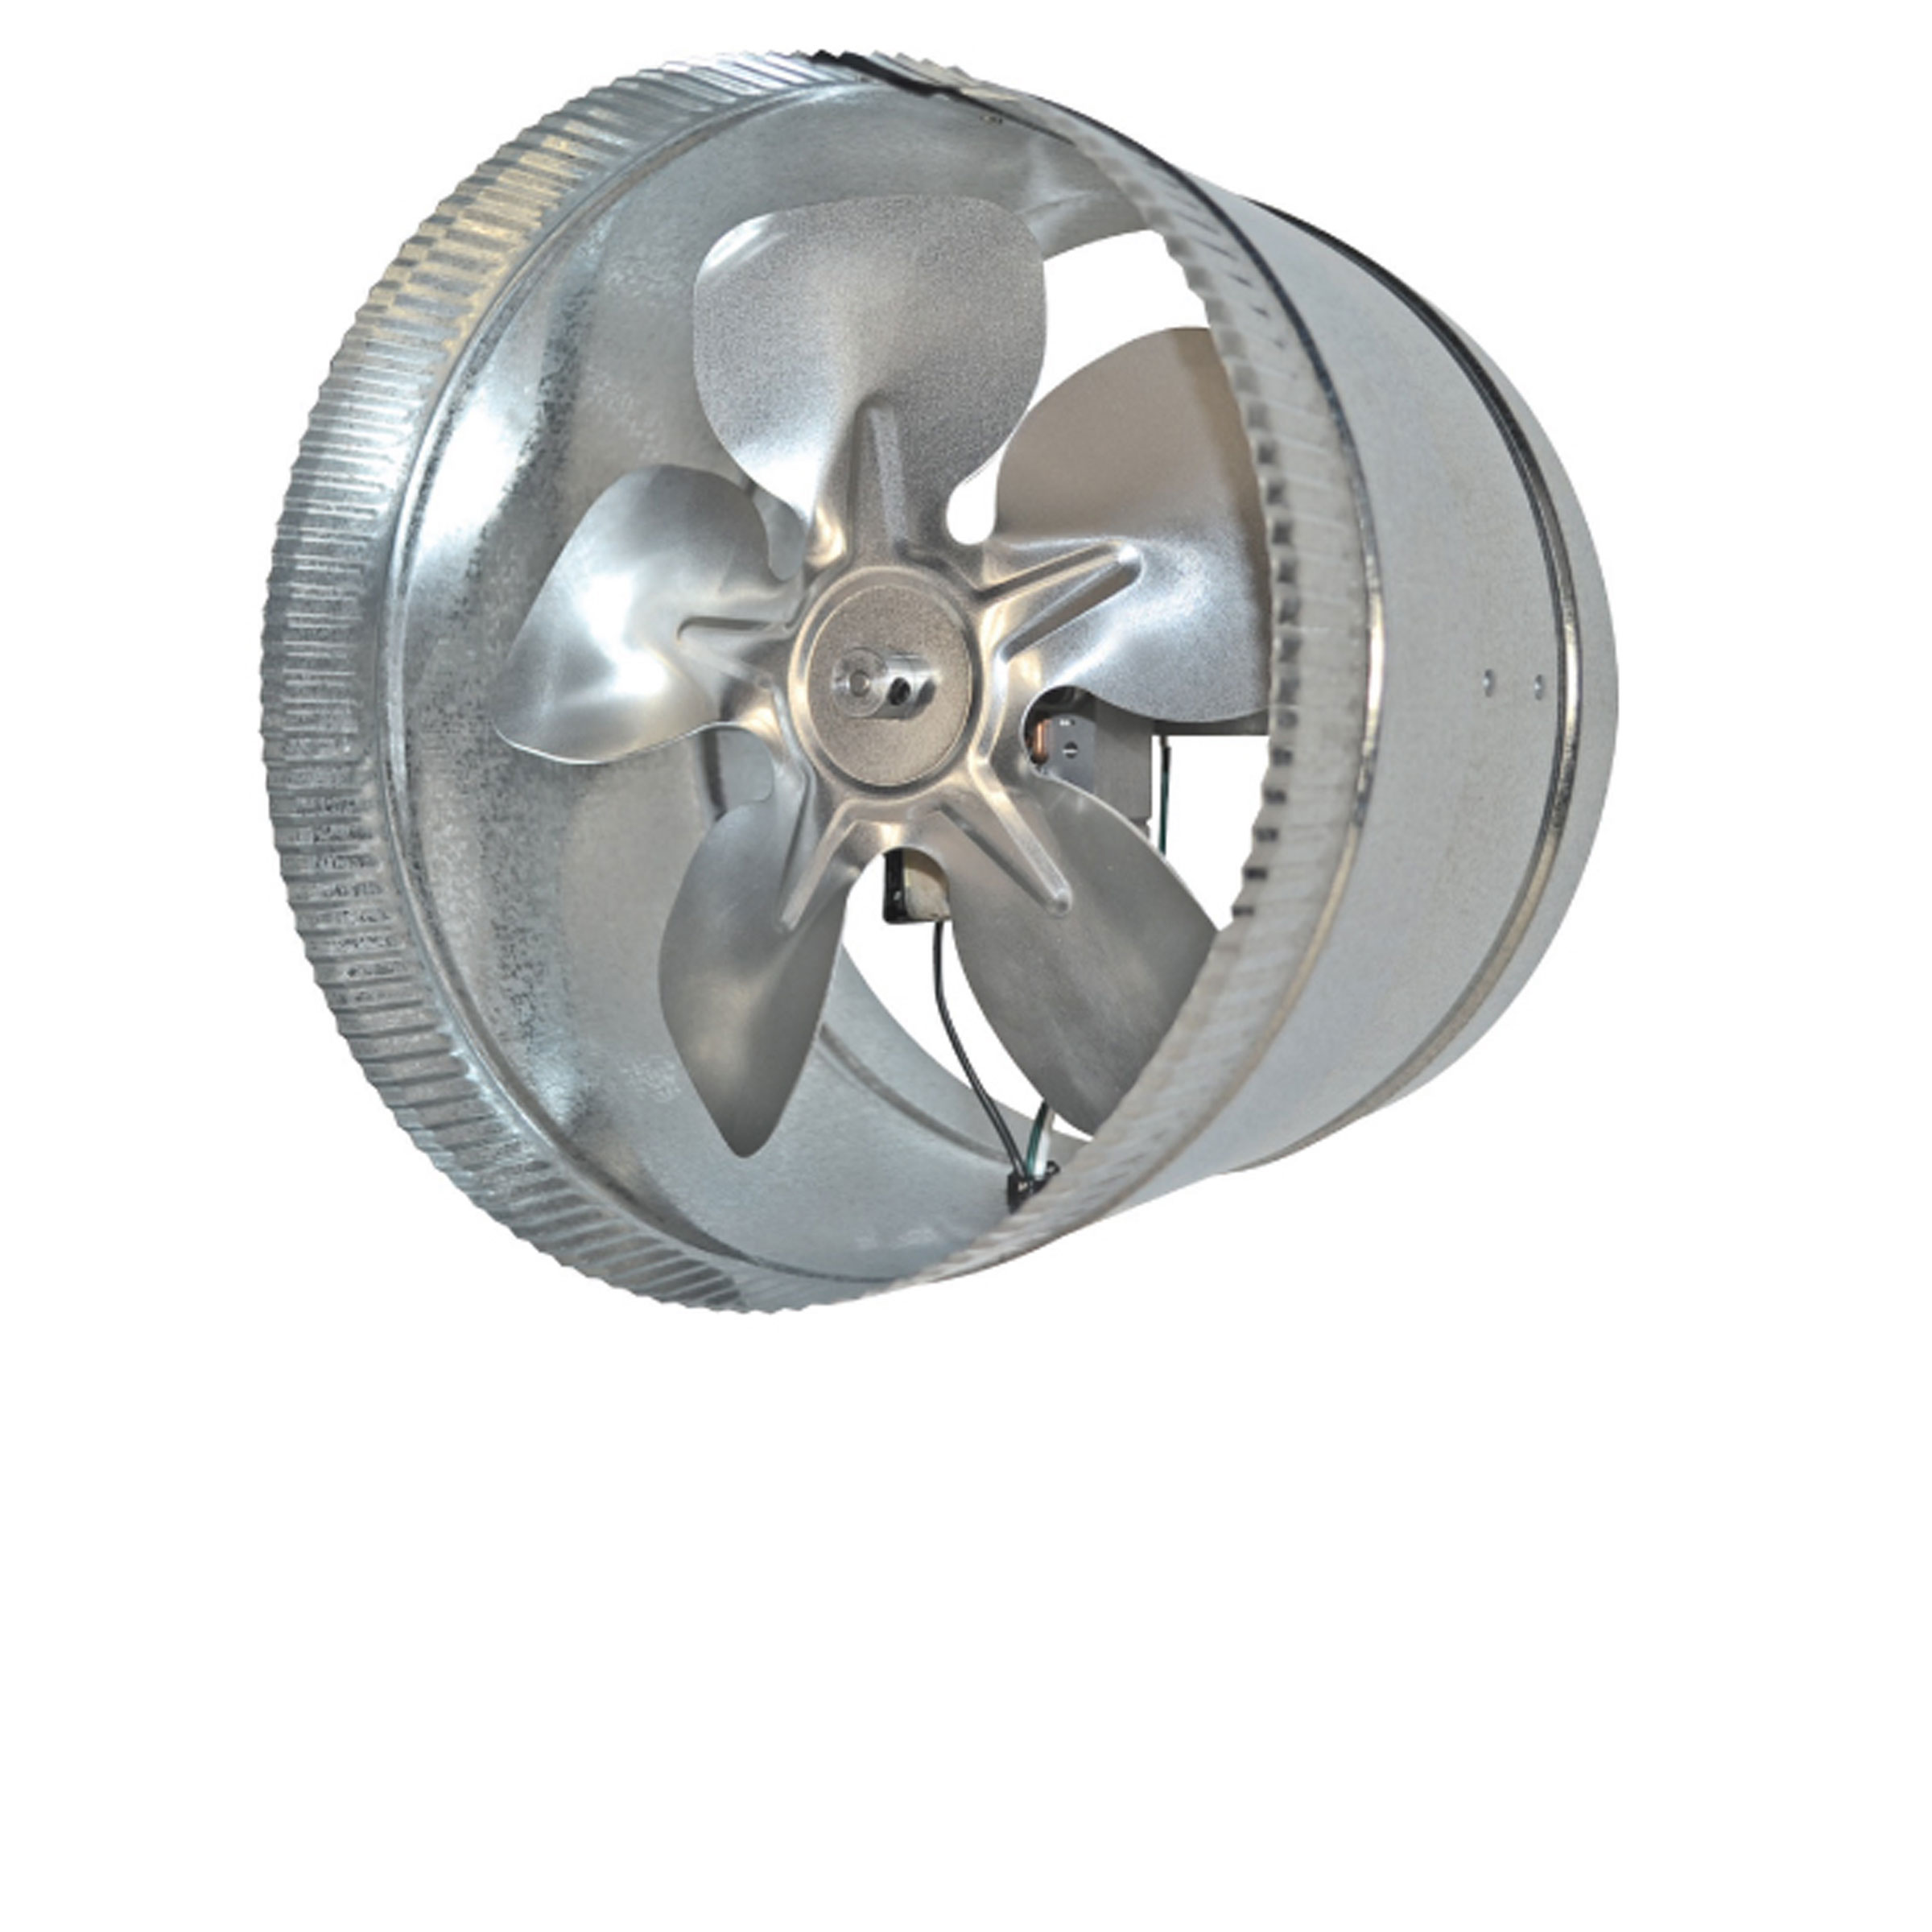 In Line Duct Fan Lowe S : Inductor inline duct fan images suncourt air